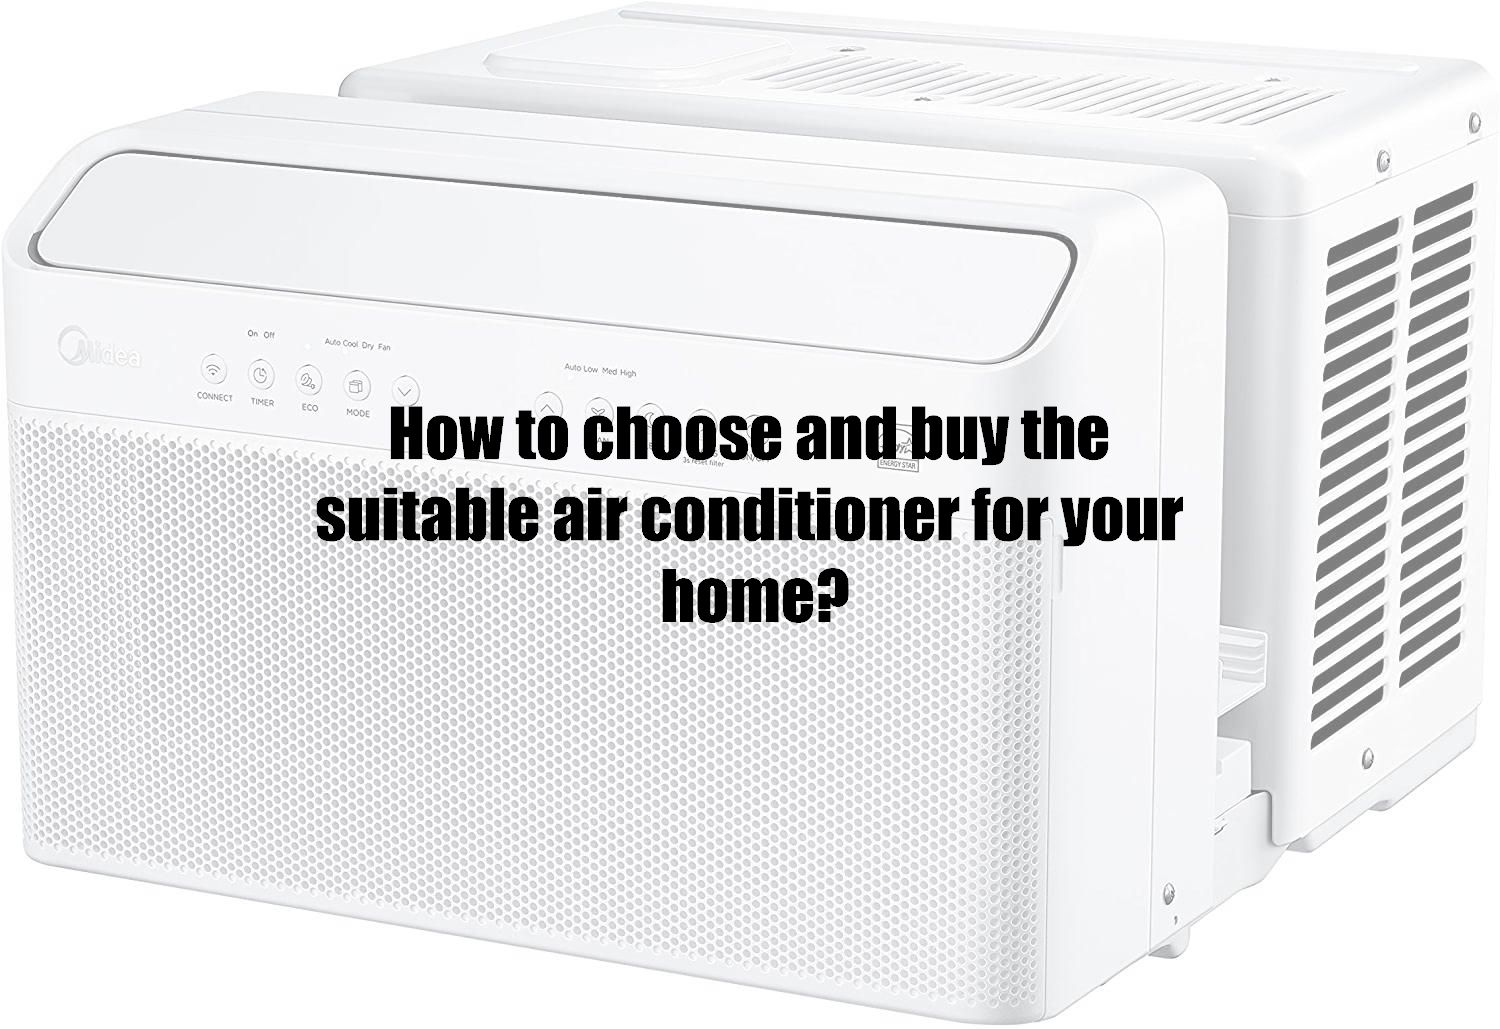 How to choose and buy the suitable air conditioner for your home?